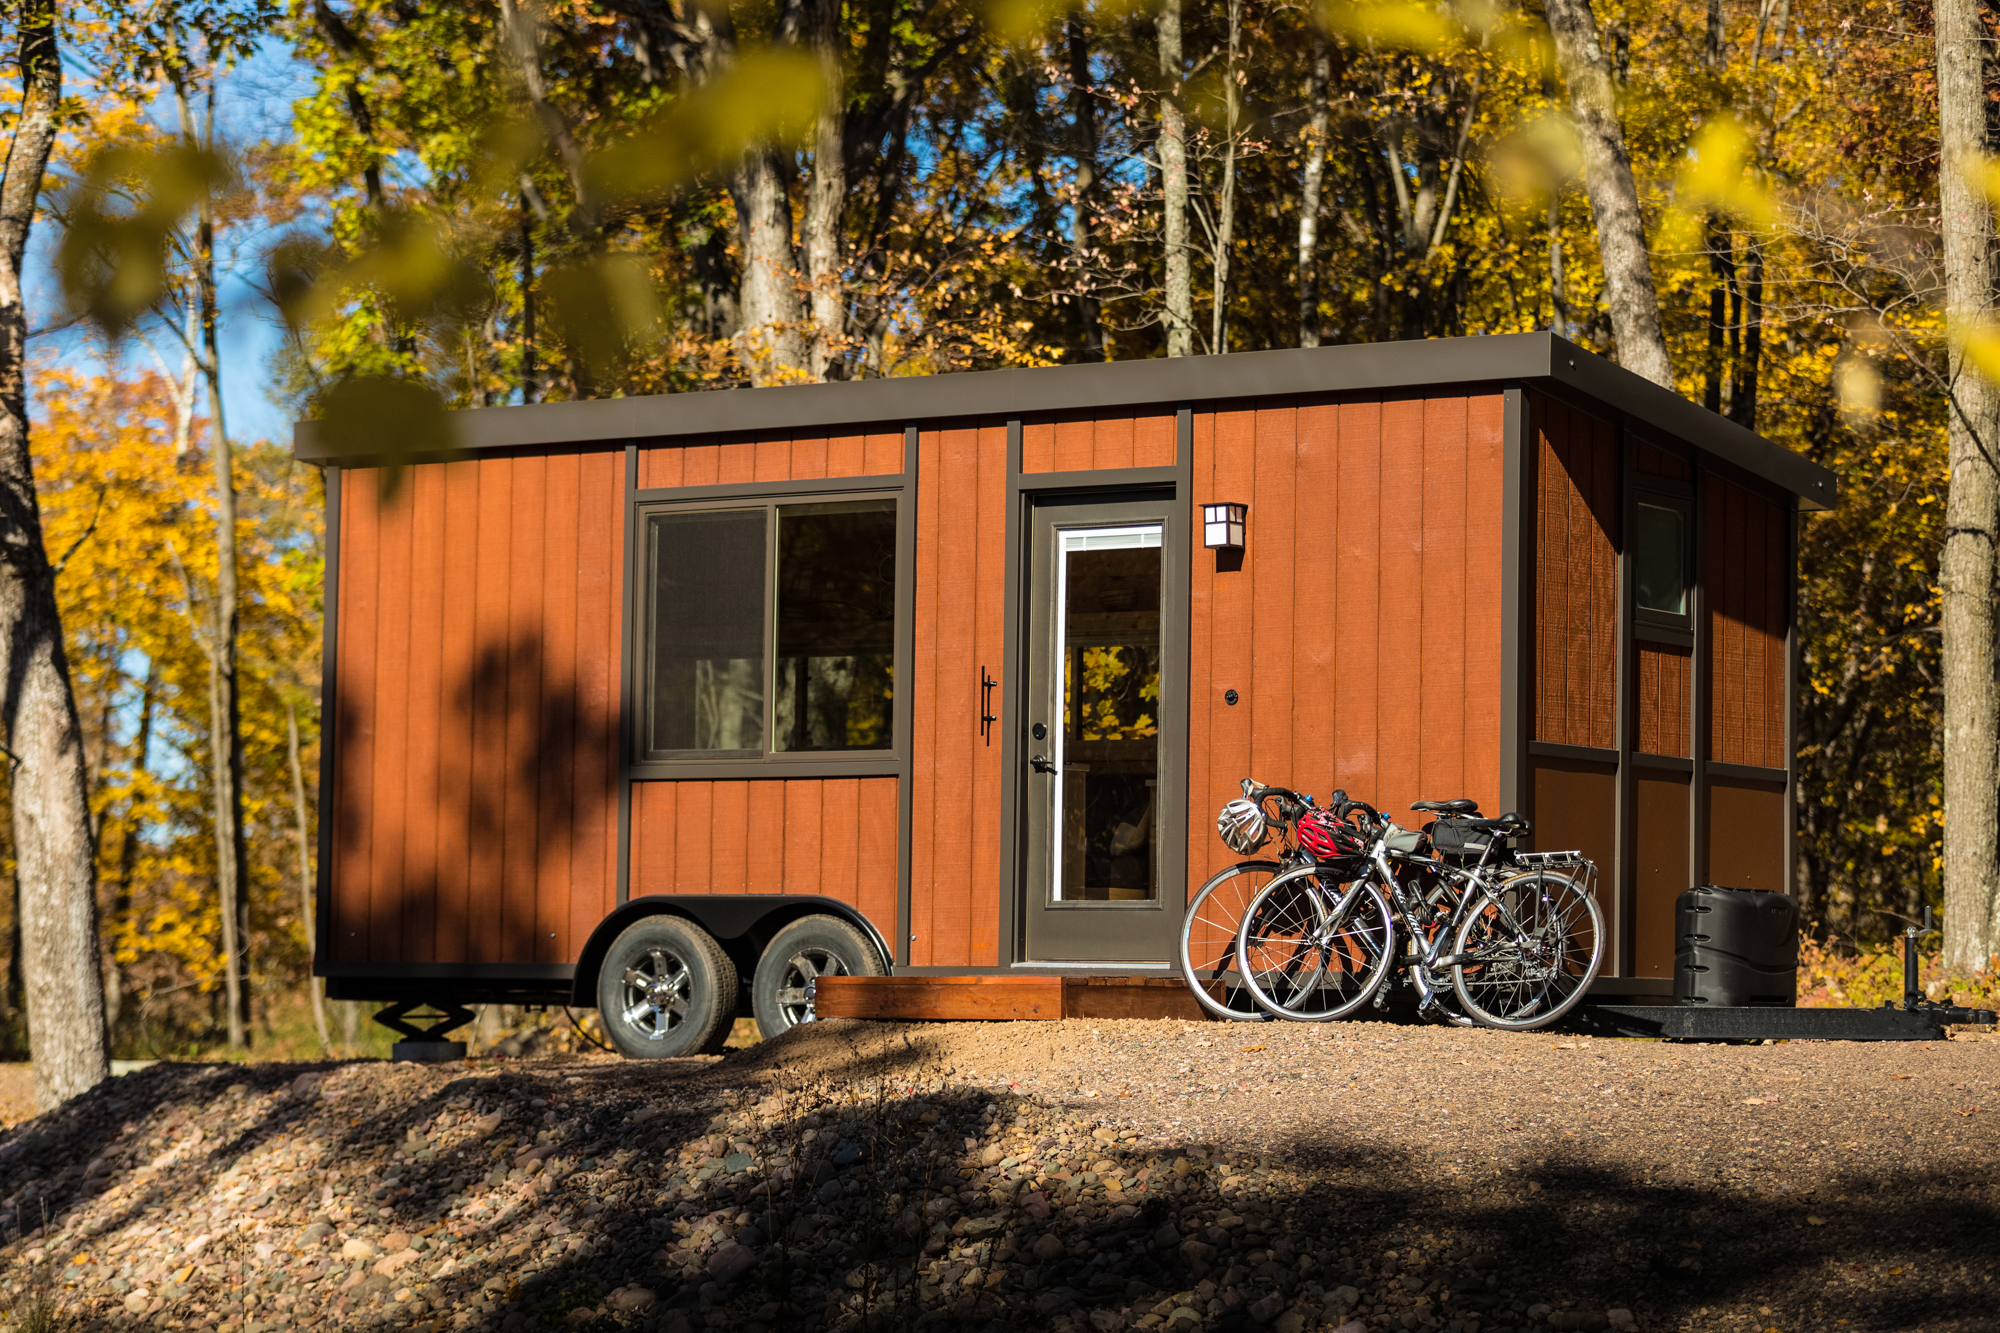 Boho Escape Tiny House Tiny Houses For Rent In Chetek Wisconsin United States,Warm Neutral Living Room Colors